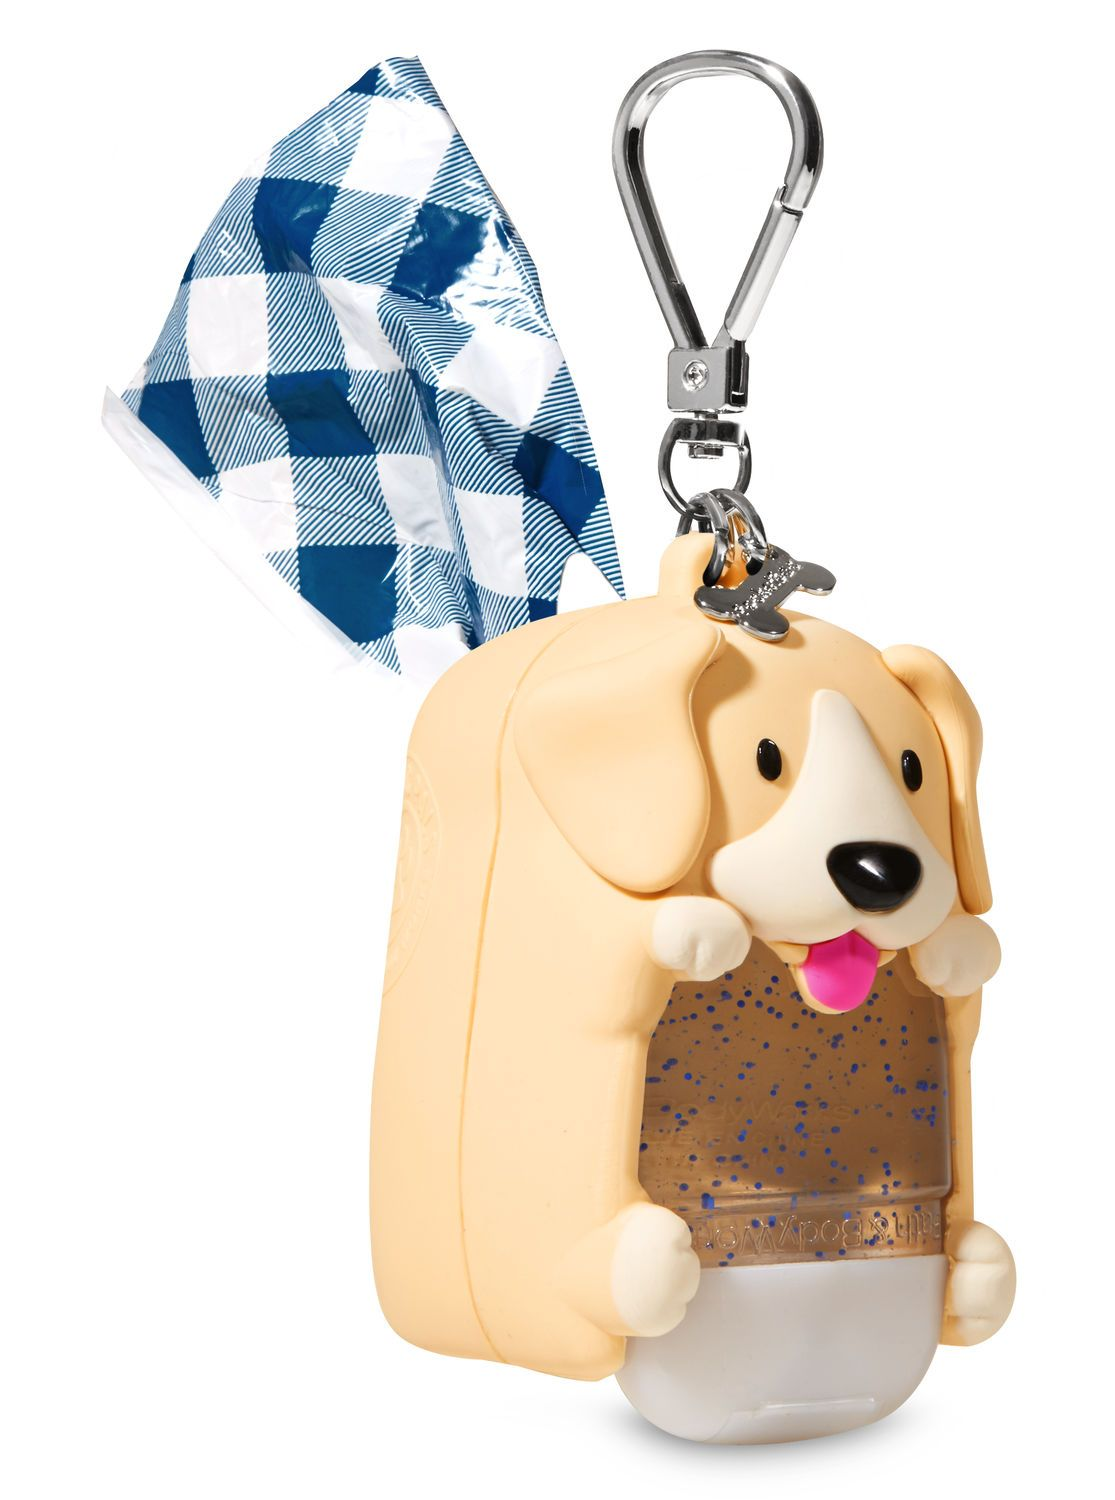 Labrador Doggie Bag Pocketbac Holder By Bath Body Works With